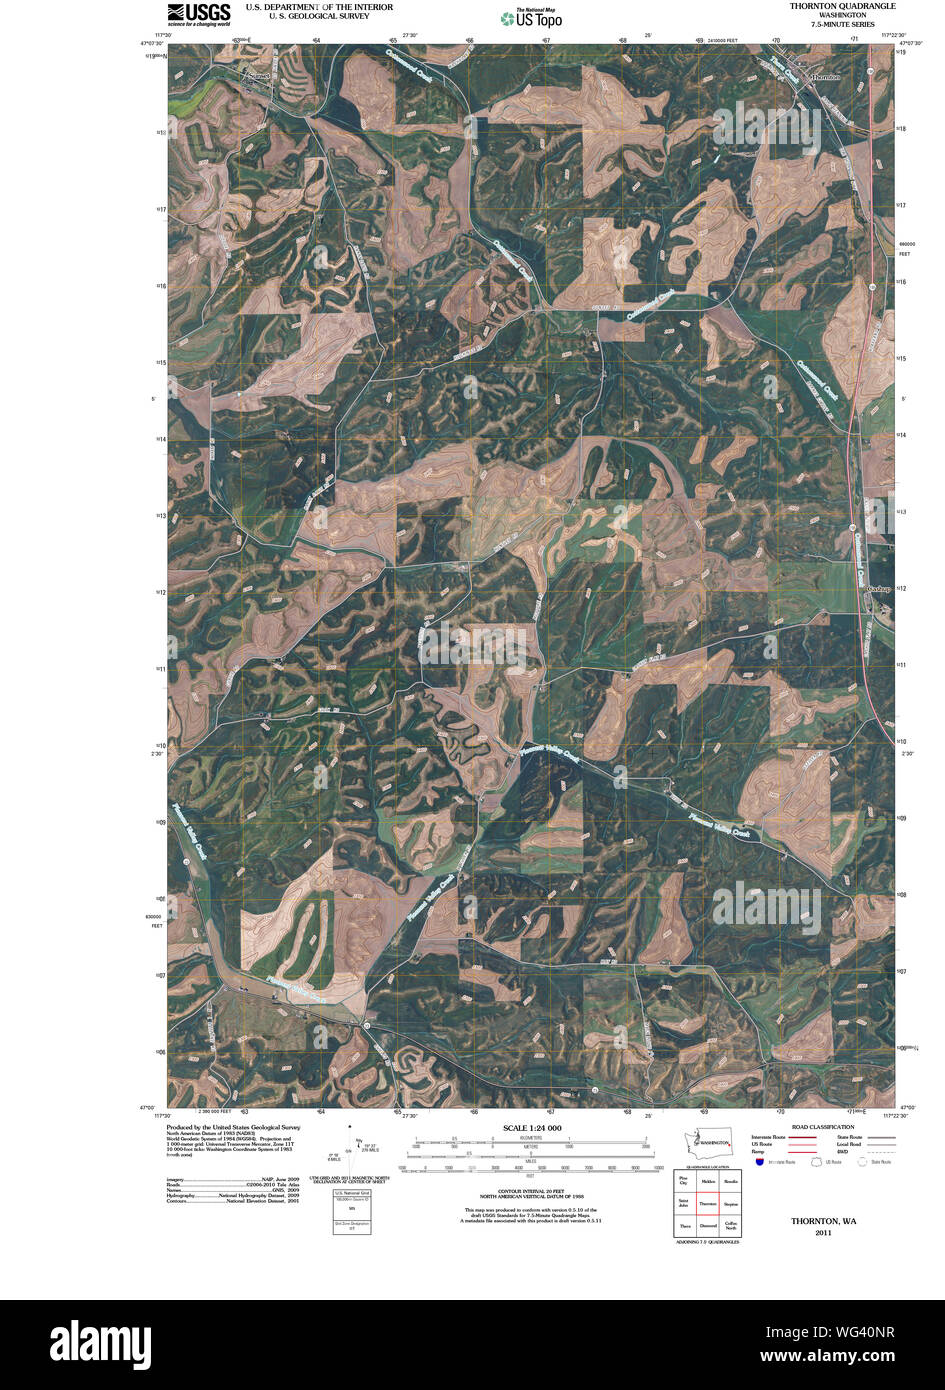 Thornton Cut Out Stock Images & Pictures - Alamy on wilmot map, lafayette map, taizhou city map, e-470 map, otis map, retreat map, lochbuie map, saddle mountain map, commerce city co map, downcity providence map, riverside township map, new ipswich map, cherry hills village map, ophir map, glencoe map, sloan's lake map, northglenn colorado map, patterson map, arvada map, elizabeth map,